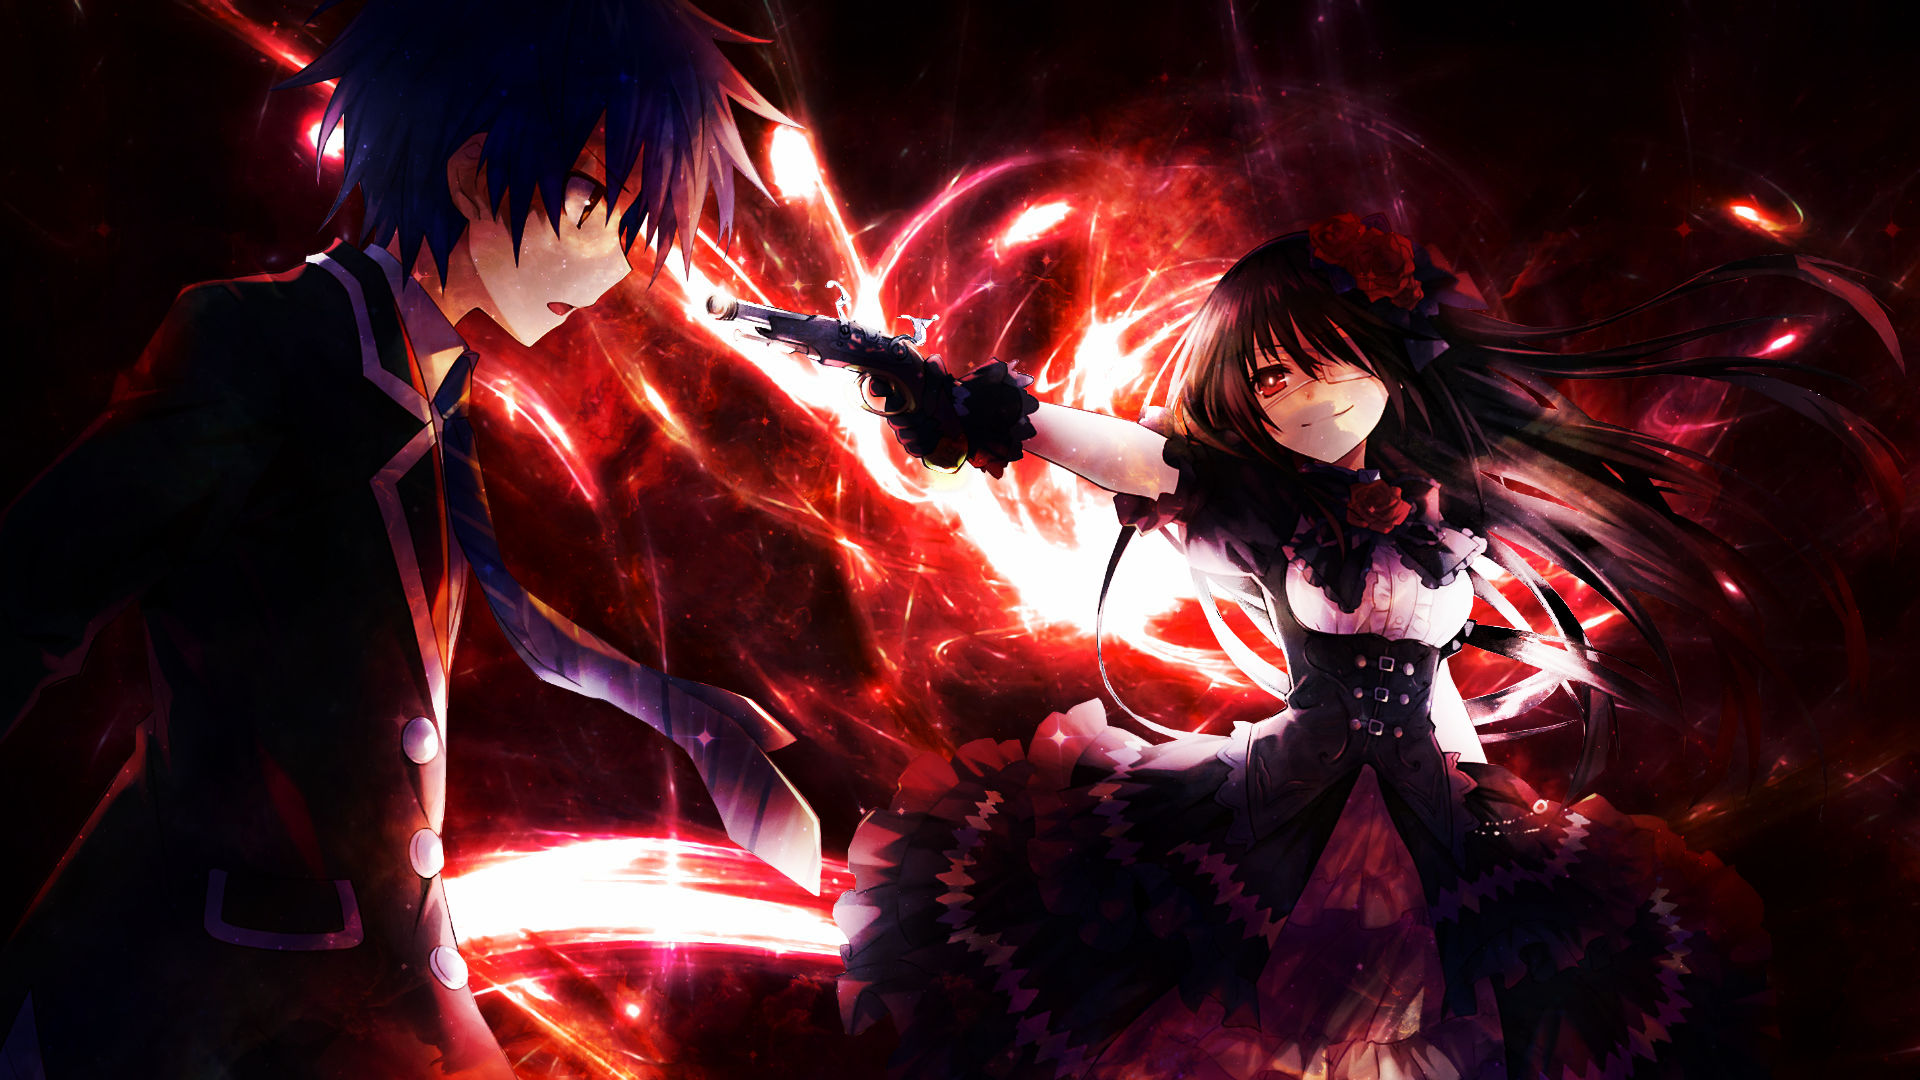 Date A Live Hd Wallpaper Background Image 1920x1080 Id